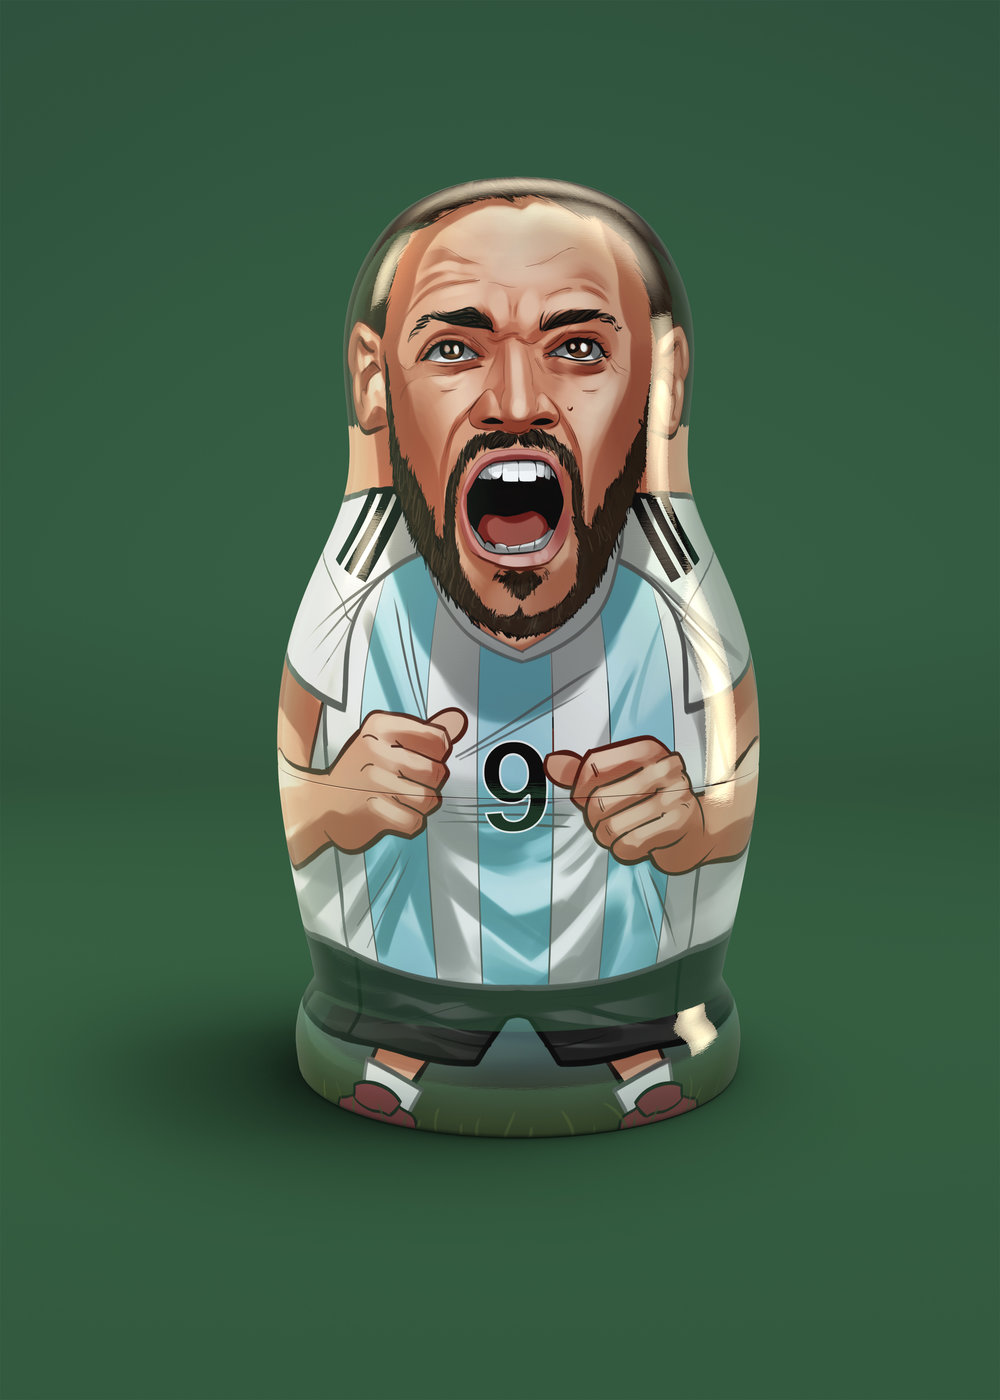 Higuain+layers+to+client.jpg